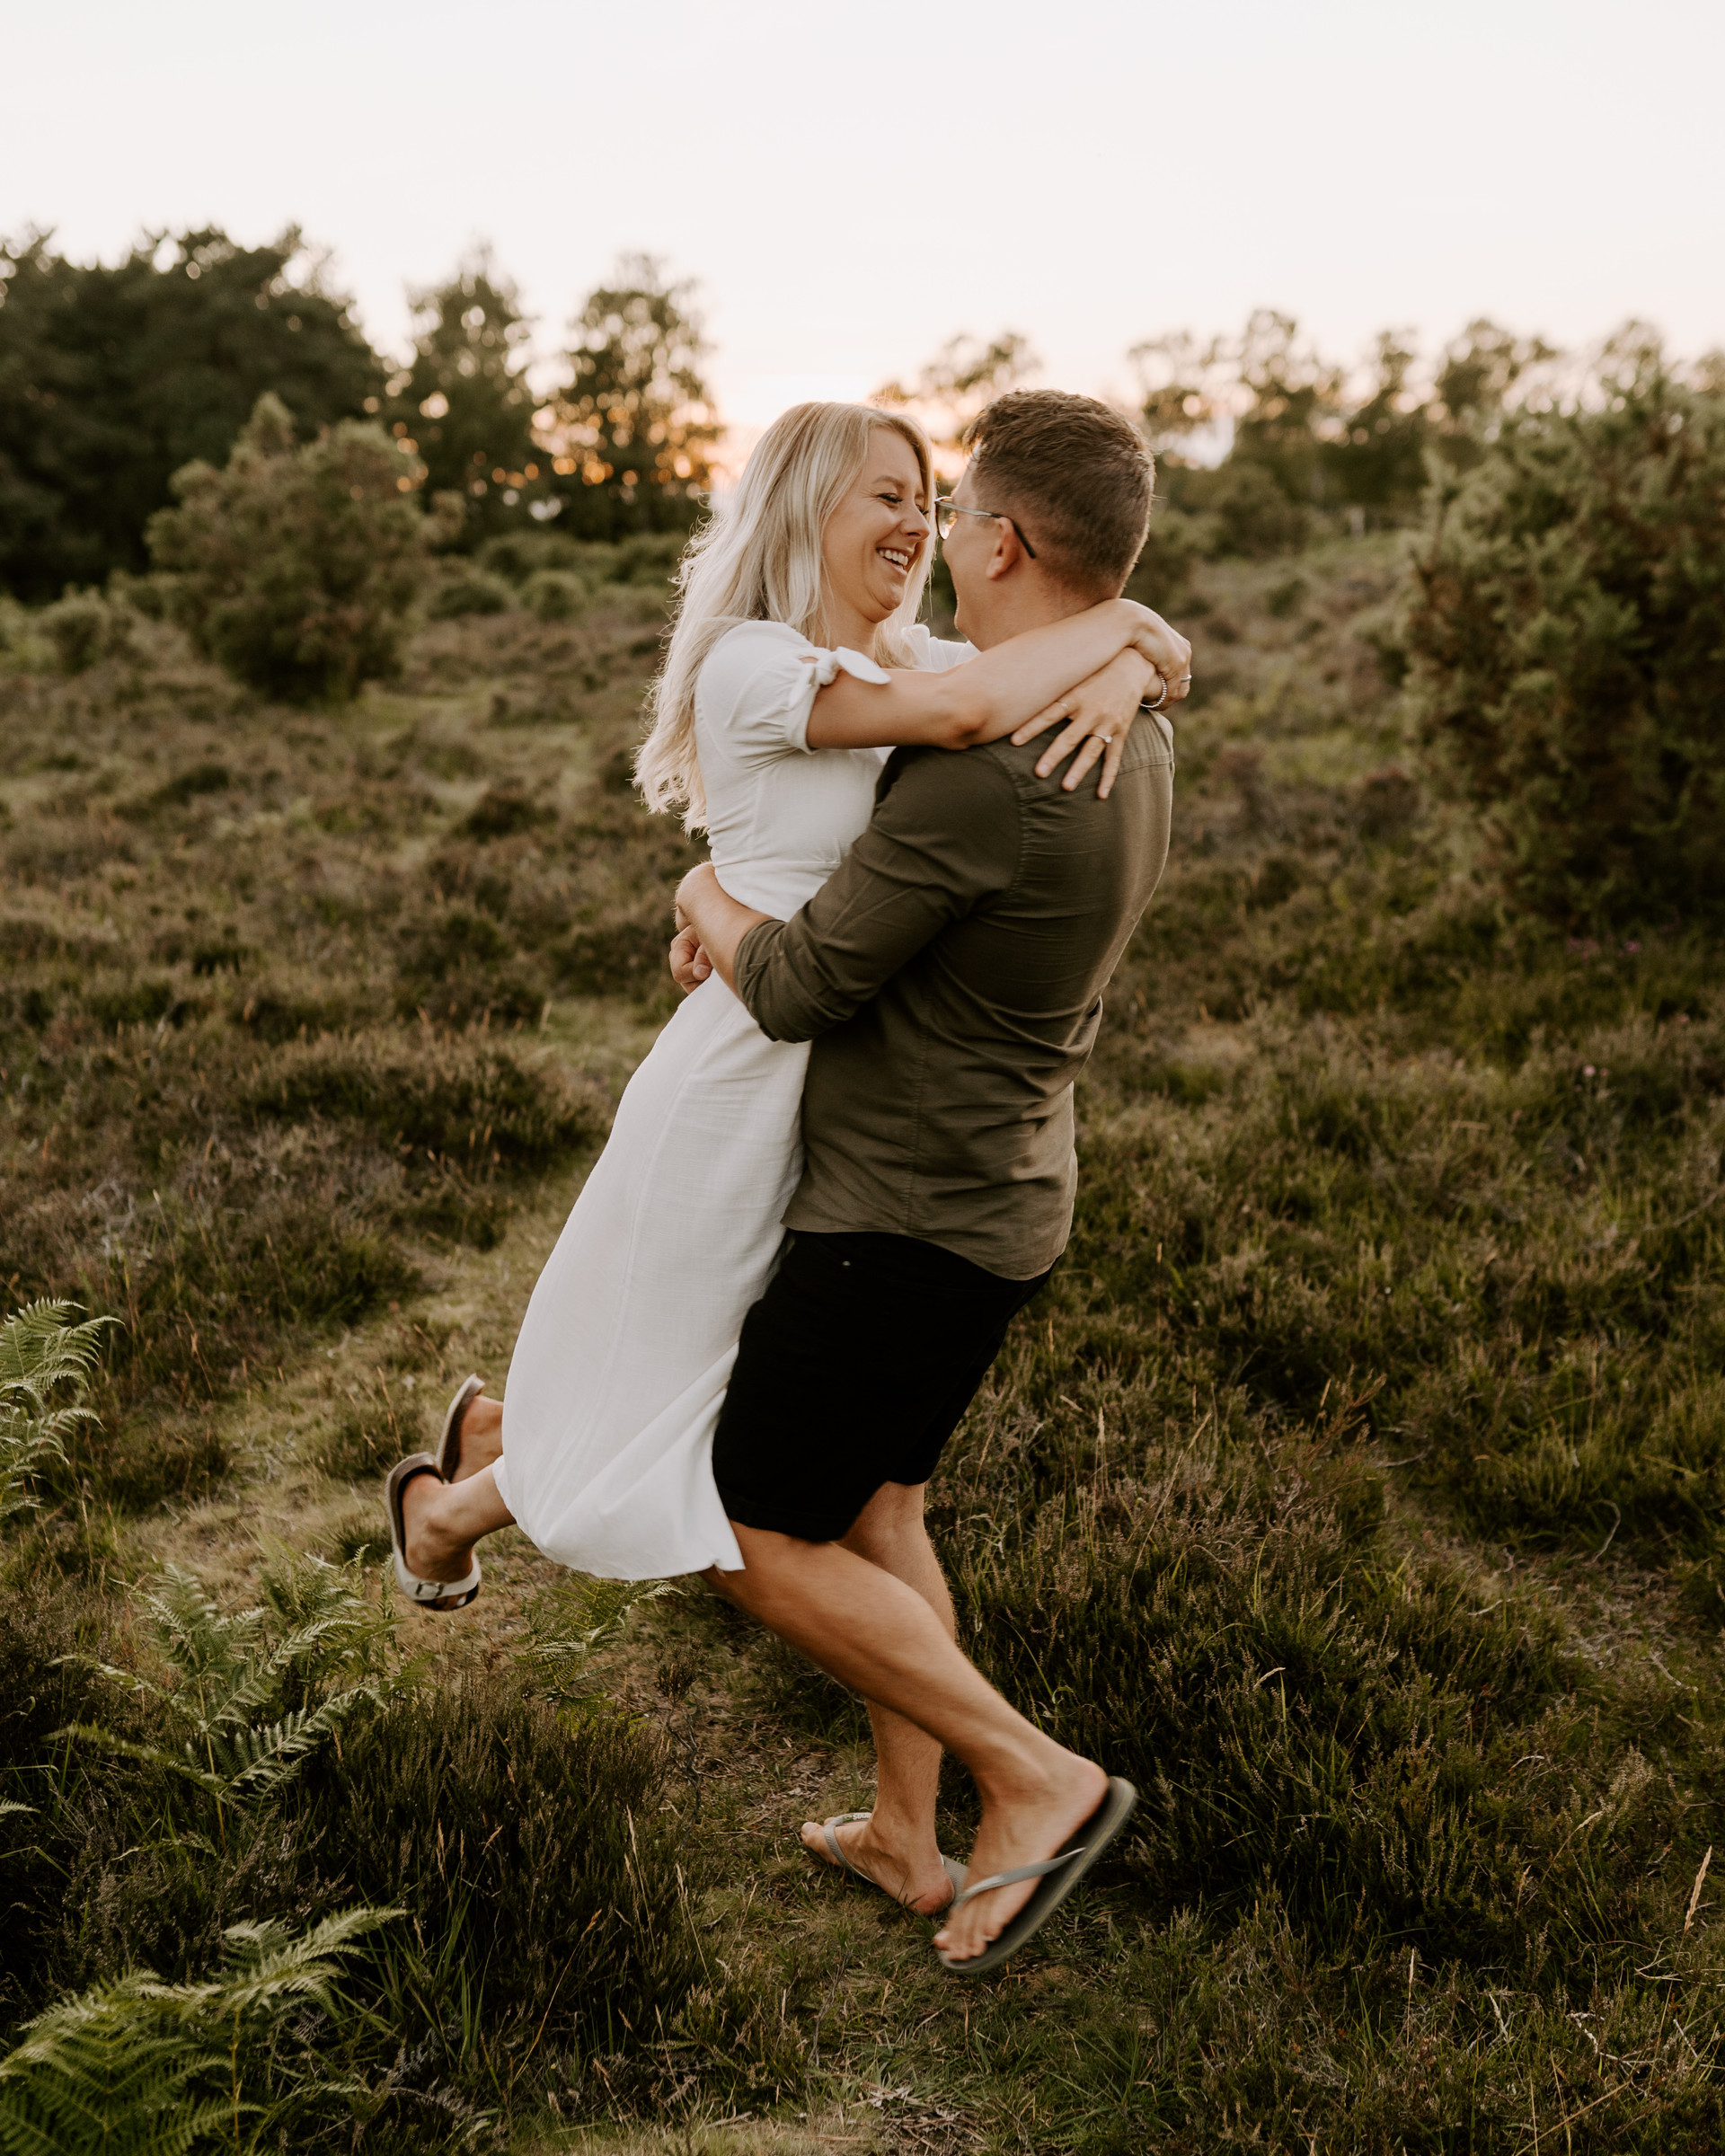 Sian & Mike | Couple Session-125.jpg